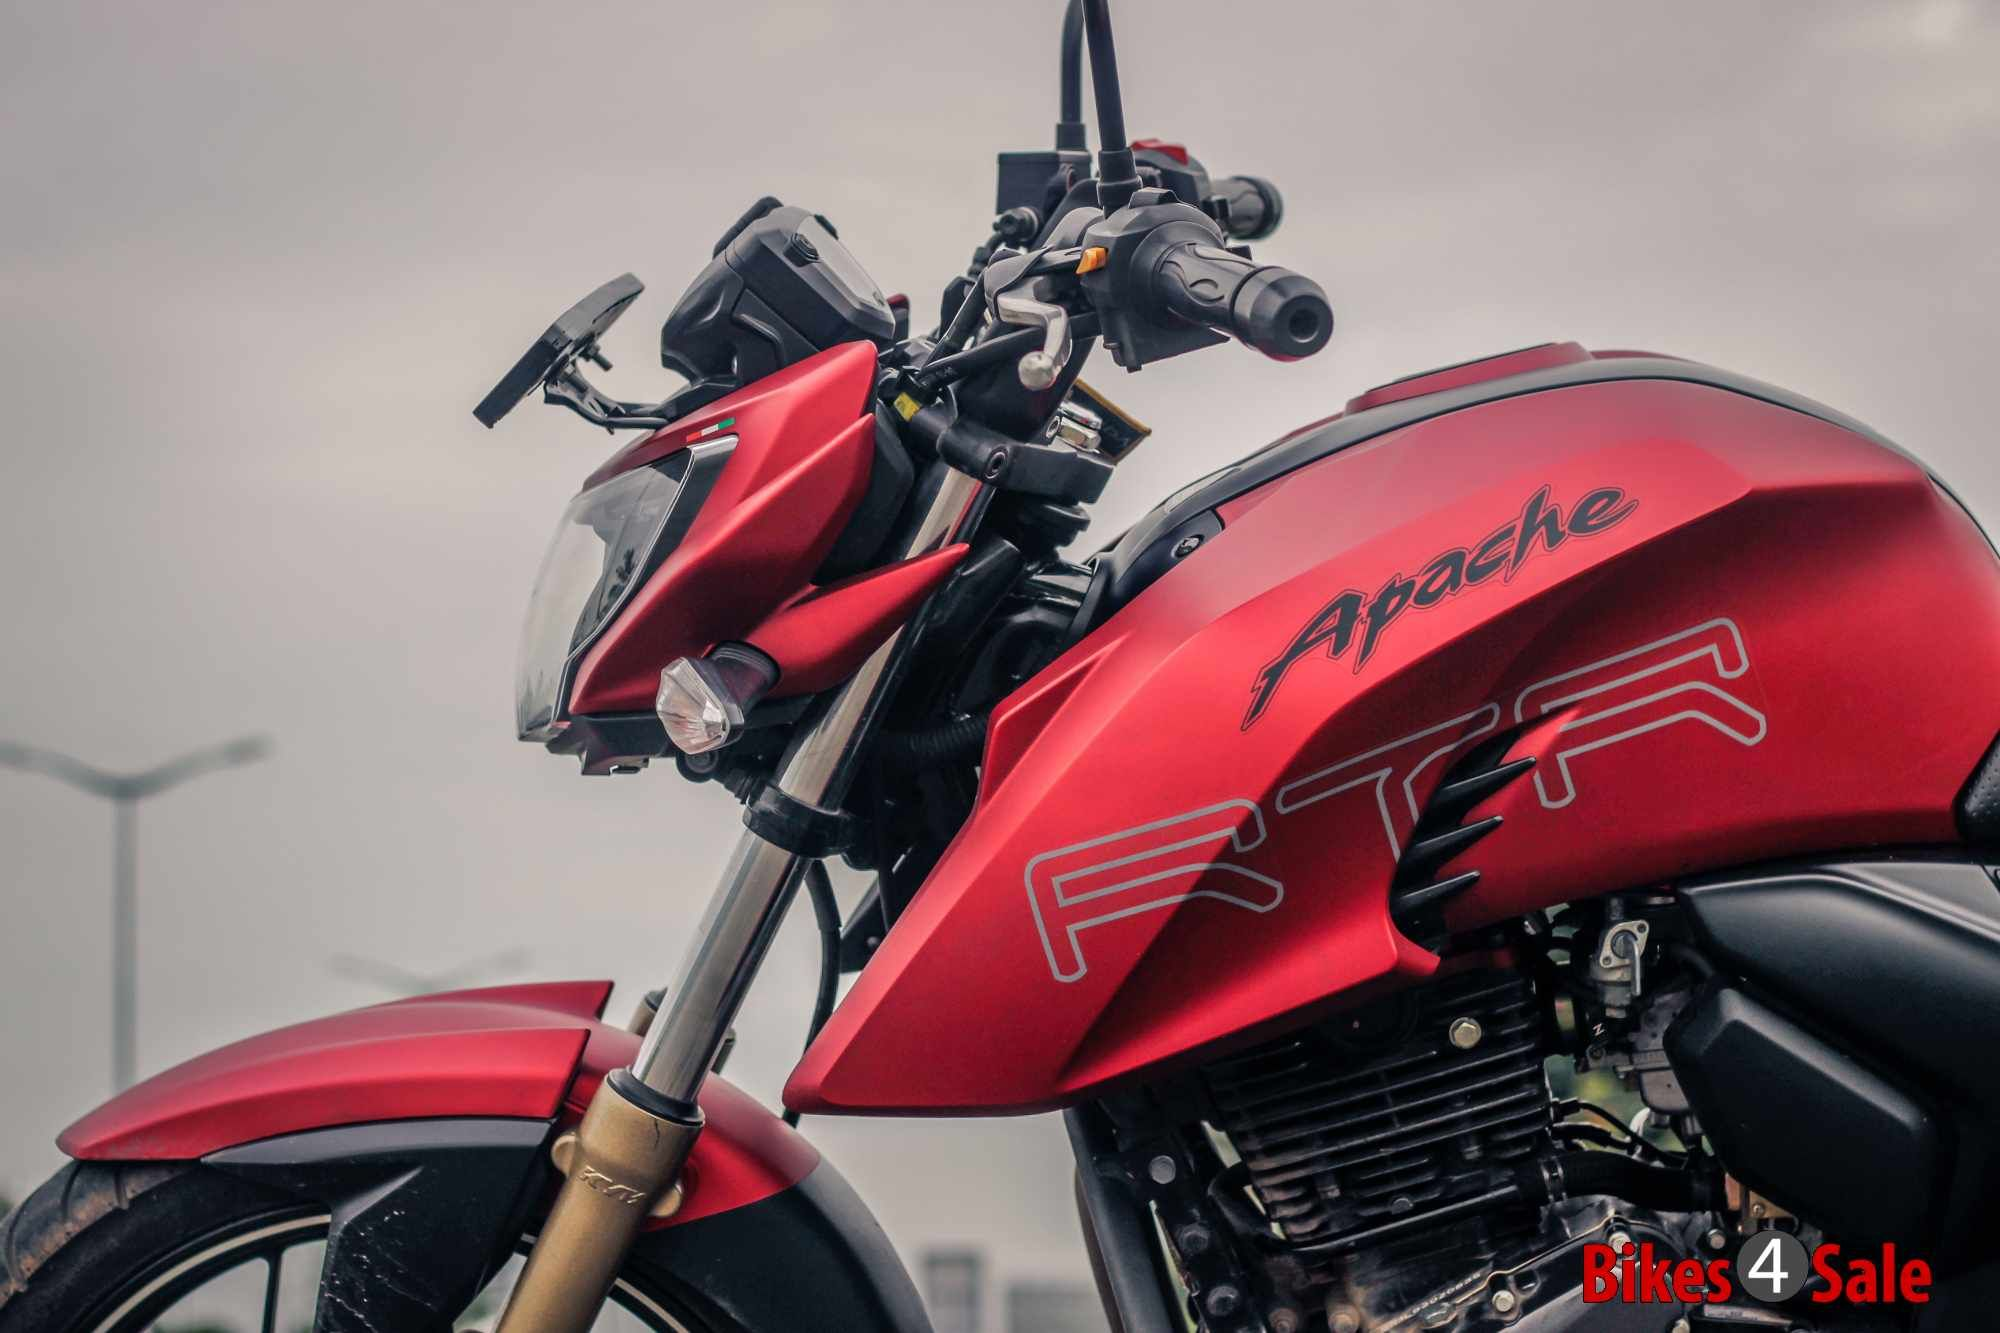 Pictures Of Tvs Apache Rtr 200 4v Motorcycle Photo 11 Download